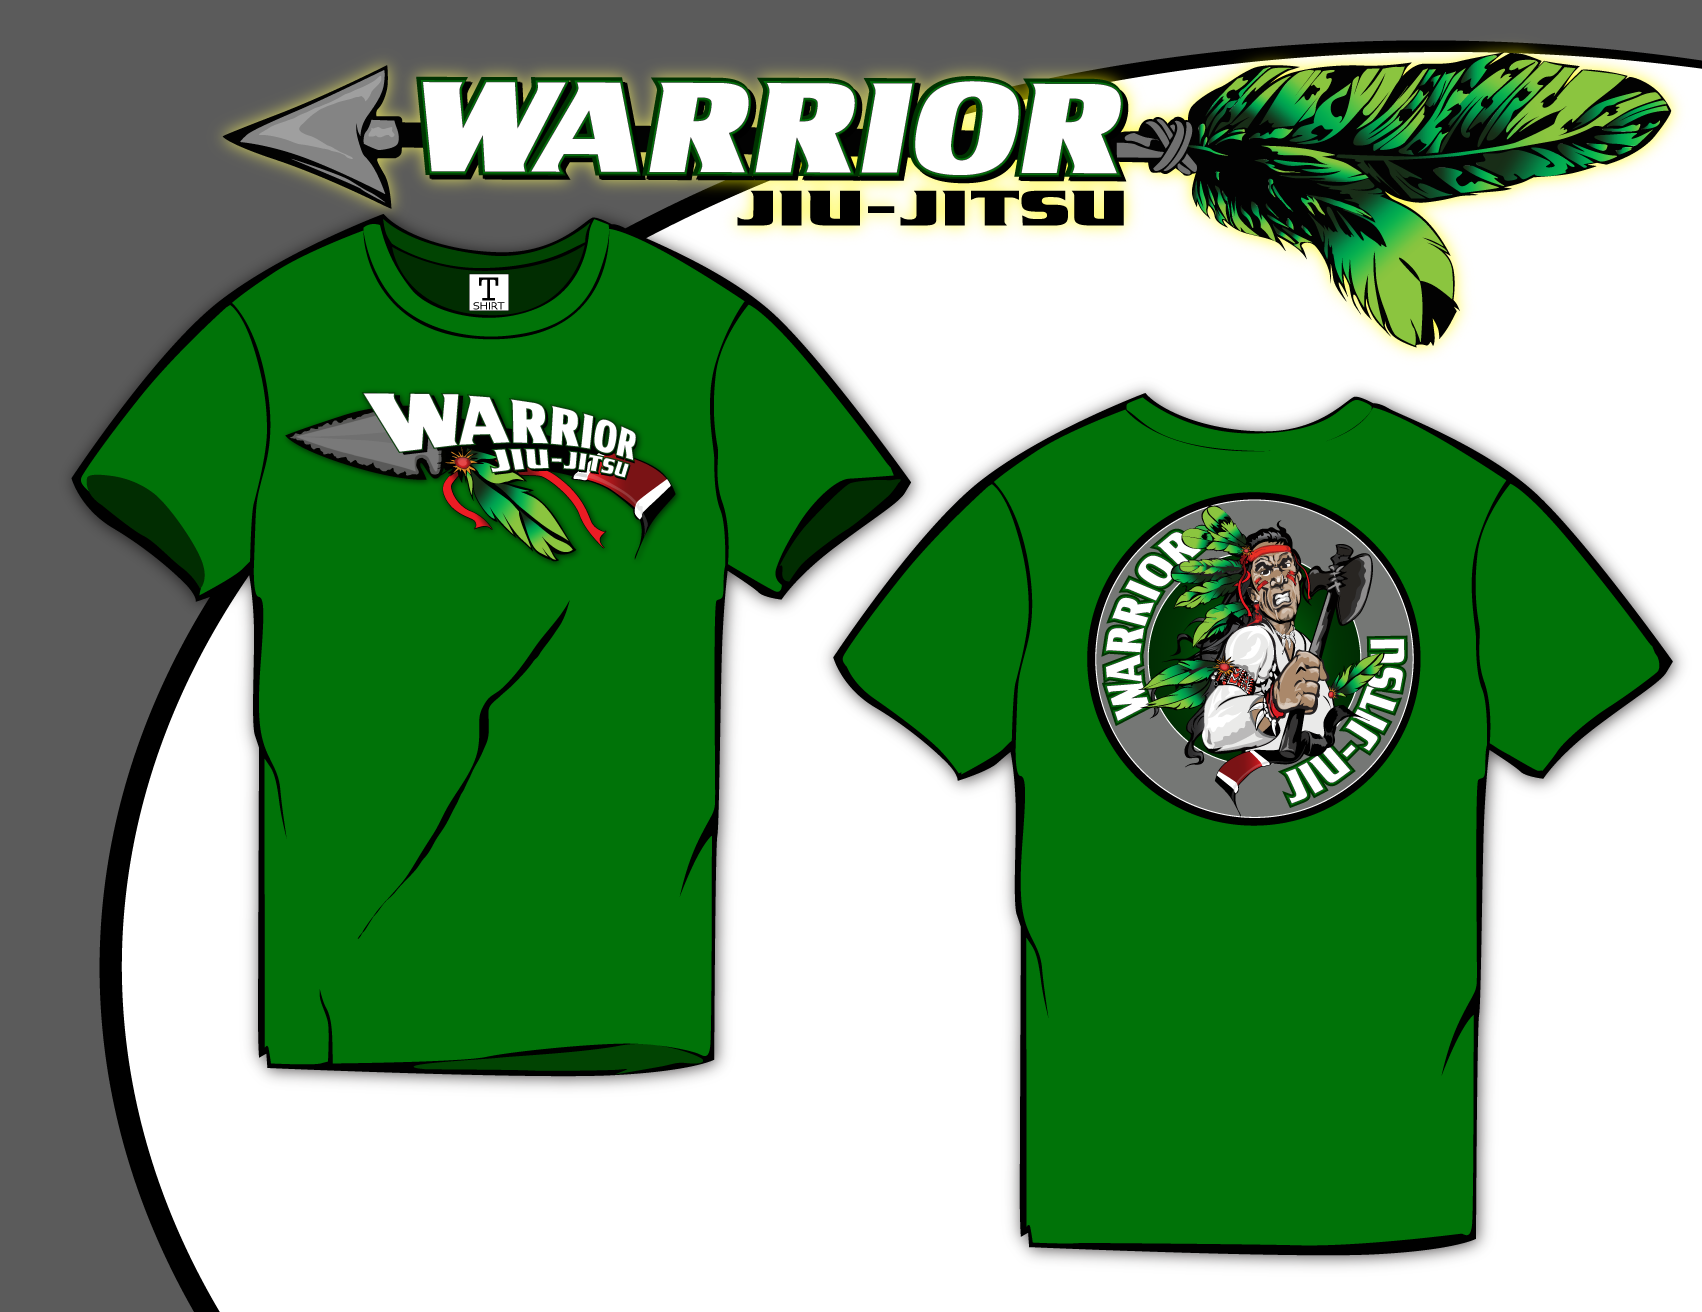 Warrior_Jiu-Jitsu_Shirts_copy.png